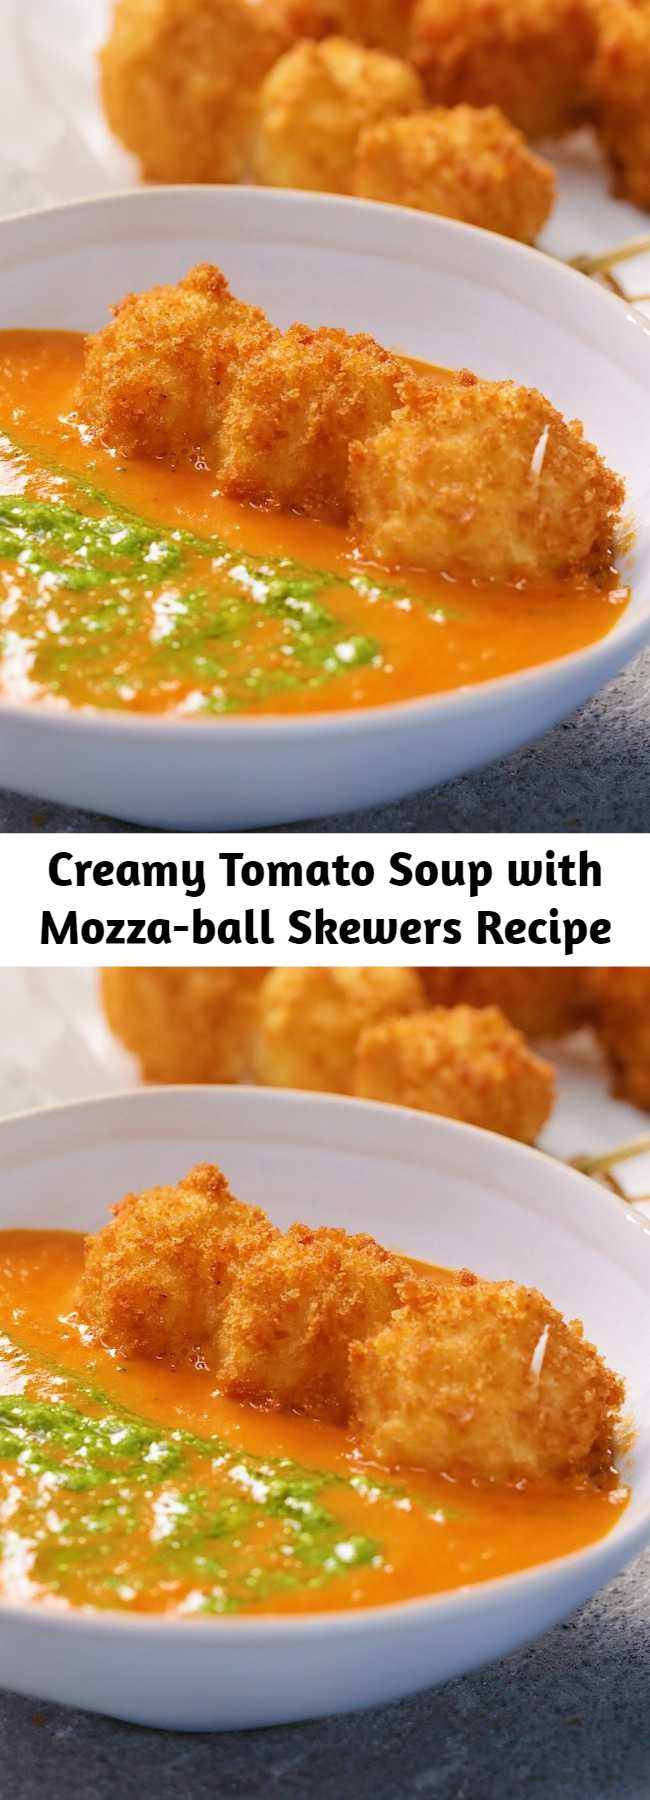 Creamy Tomato Soup with Mozza-ball Skewers Recipe - Happiness is deep-fried balls of cheese, floating in a bowl of warm creamy soup. Mmmm.